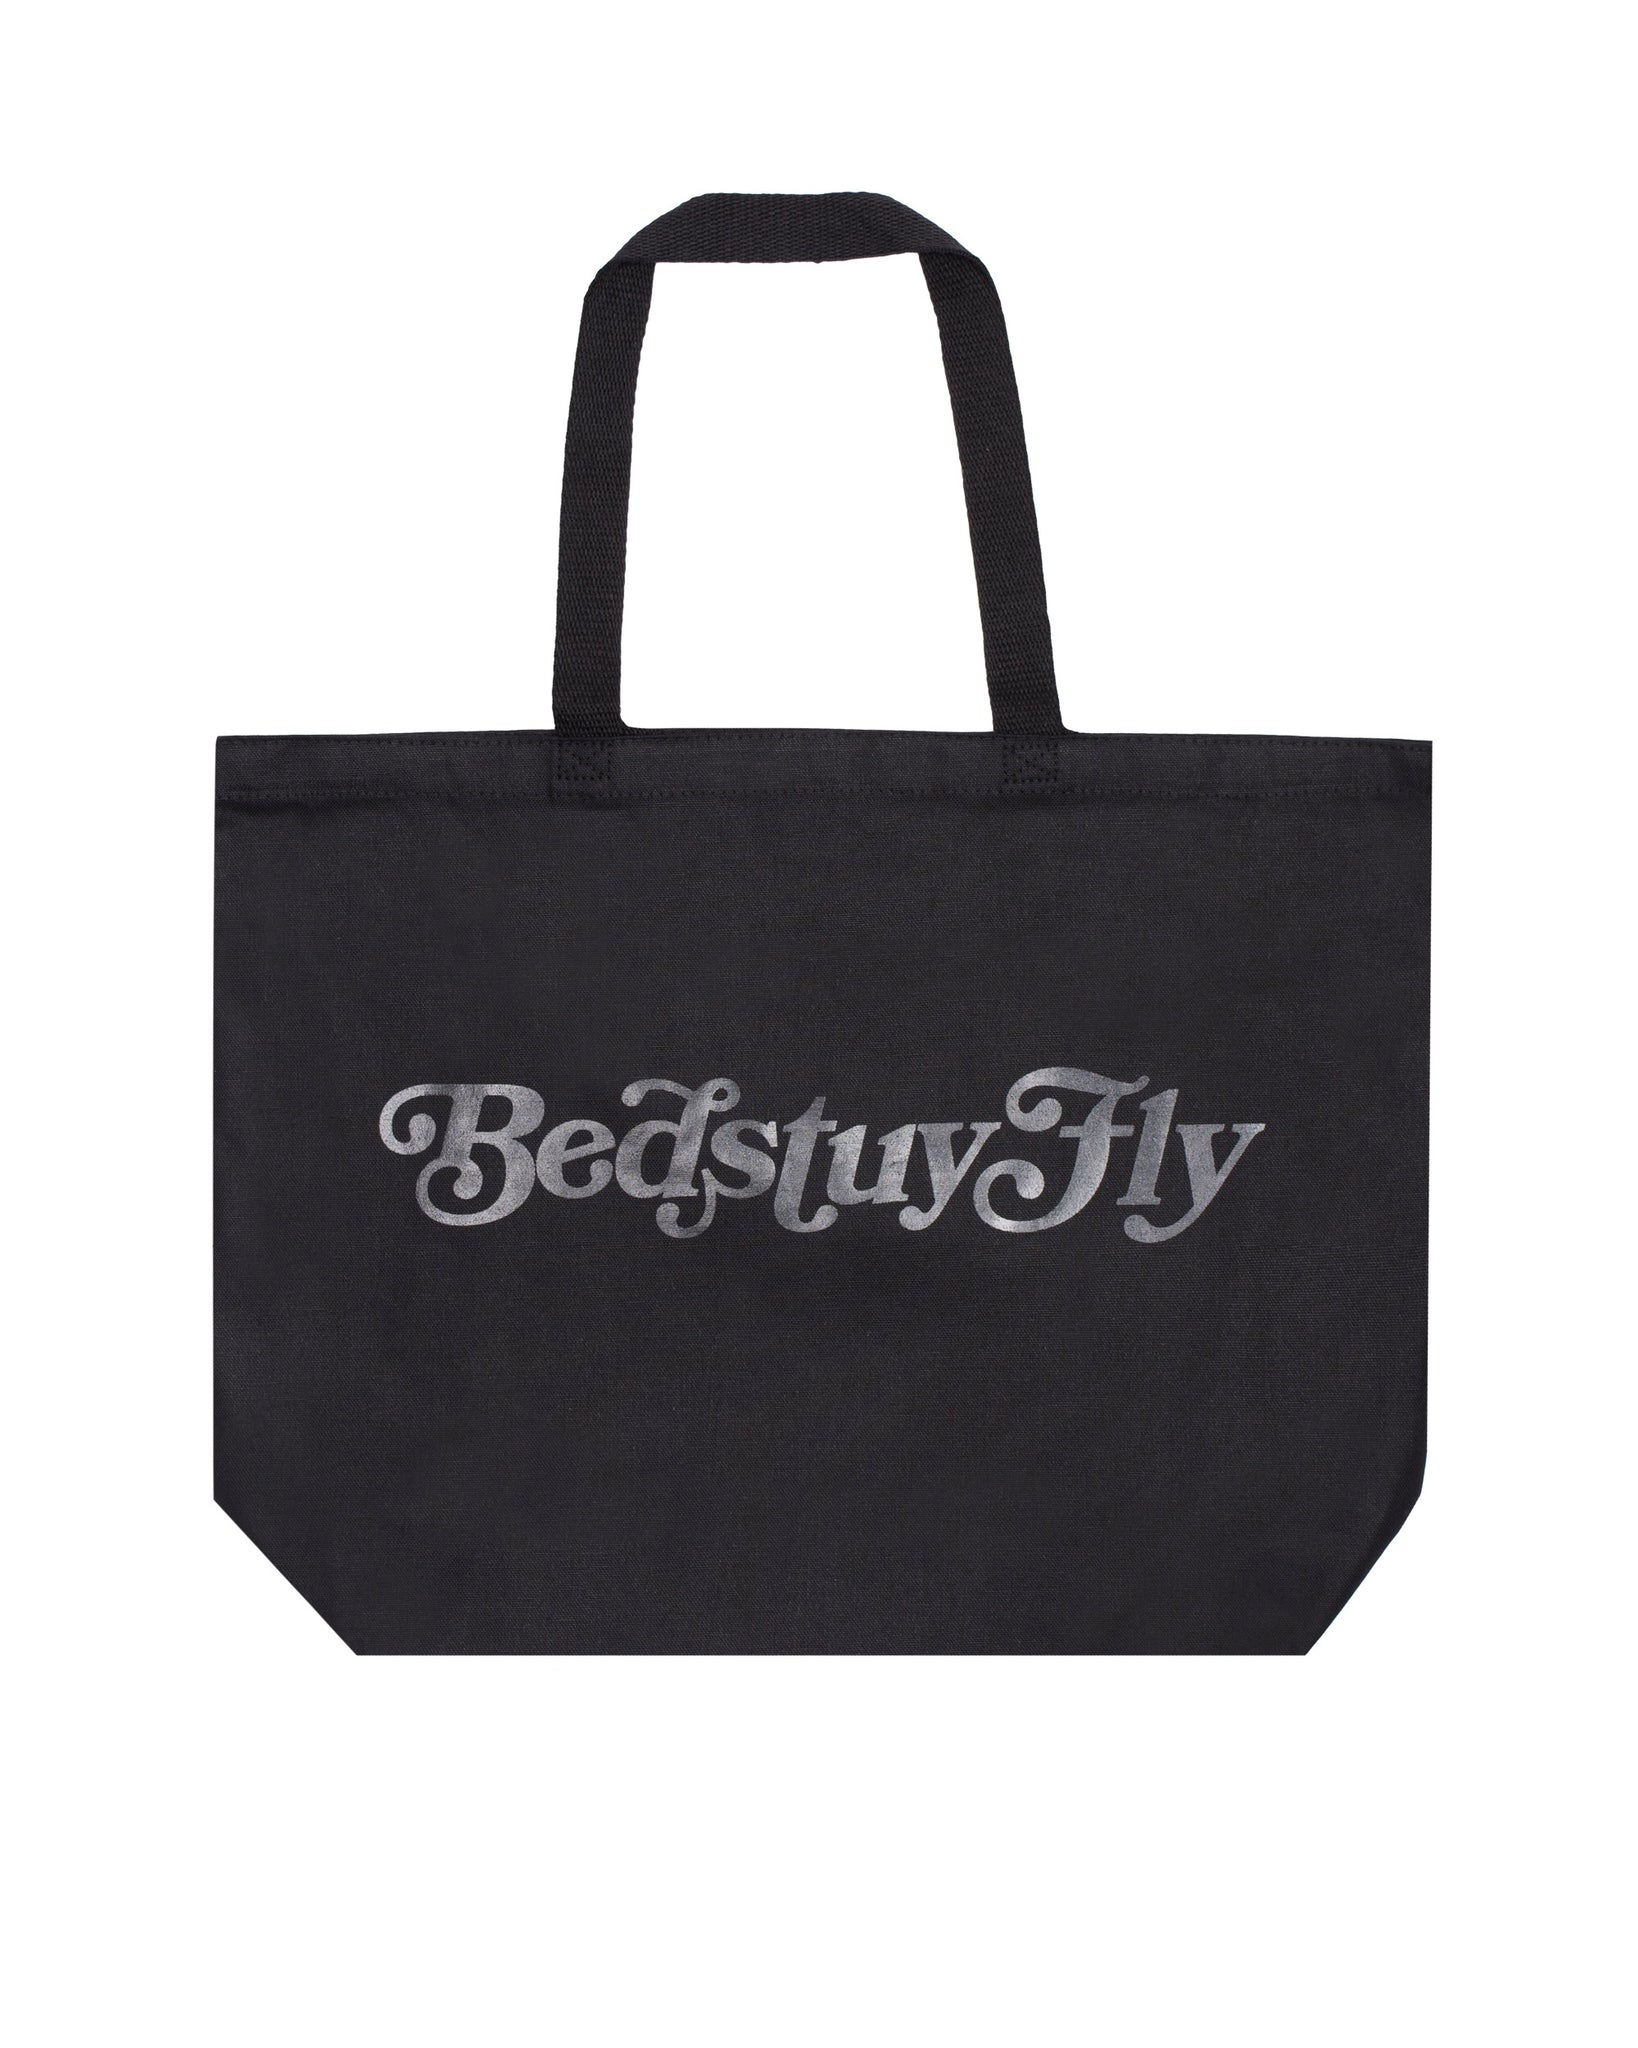 Mind Your Business Tote Bag (Blk/Blk)